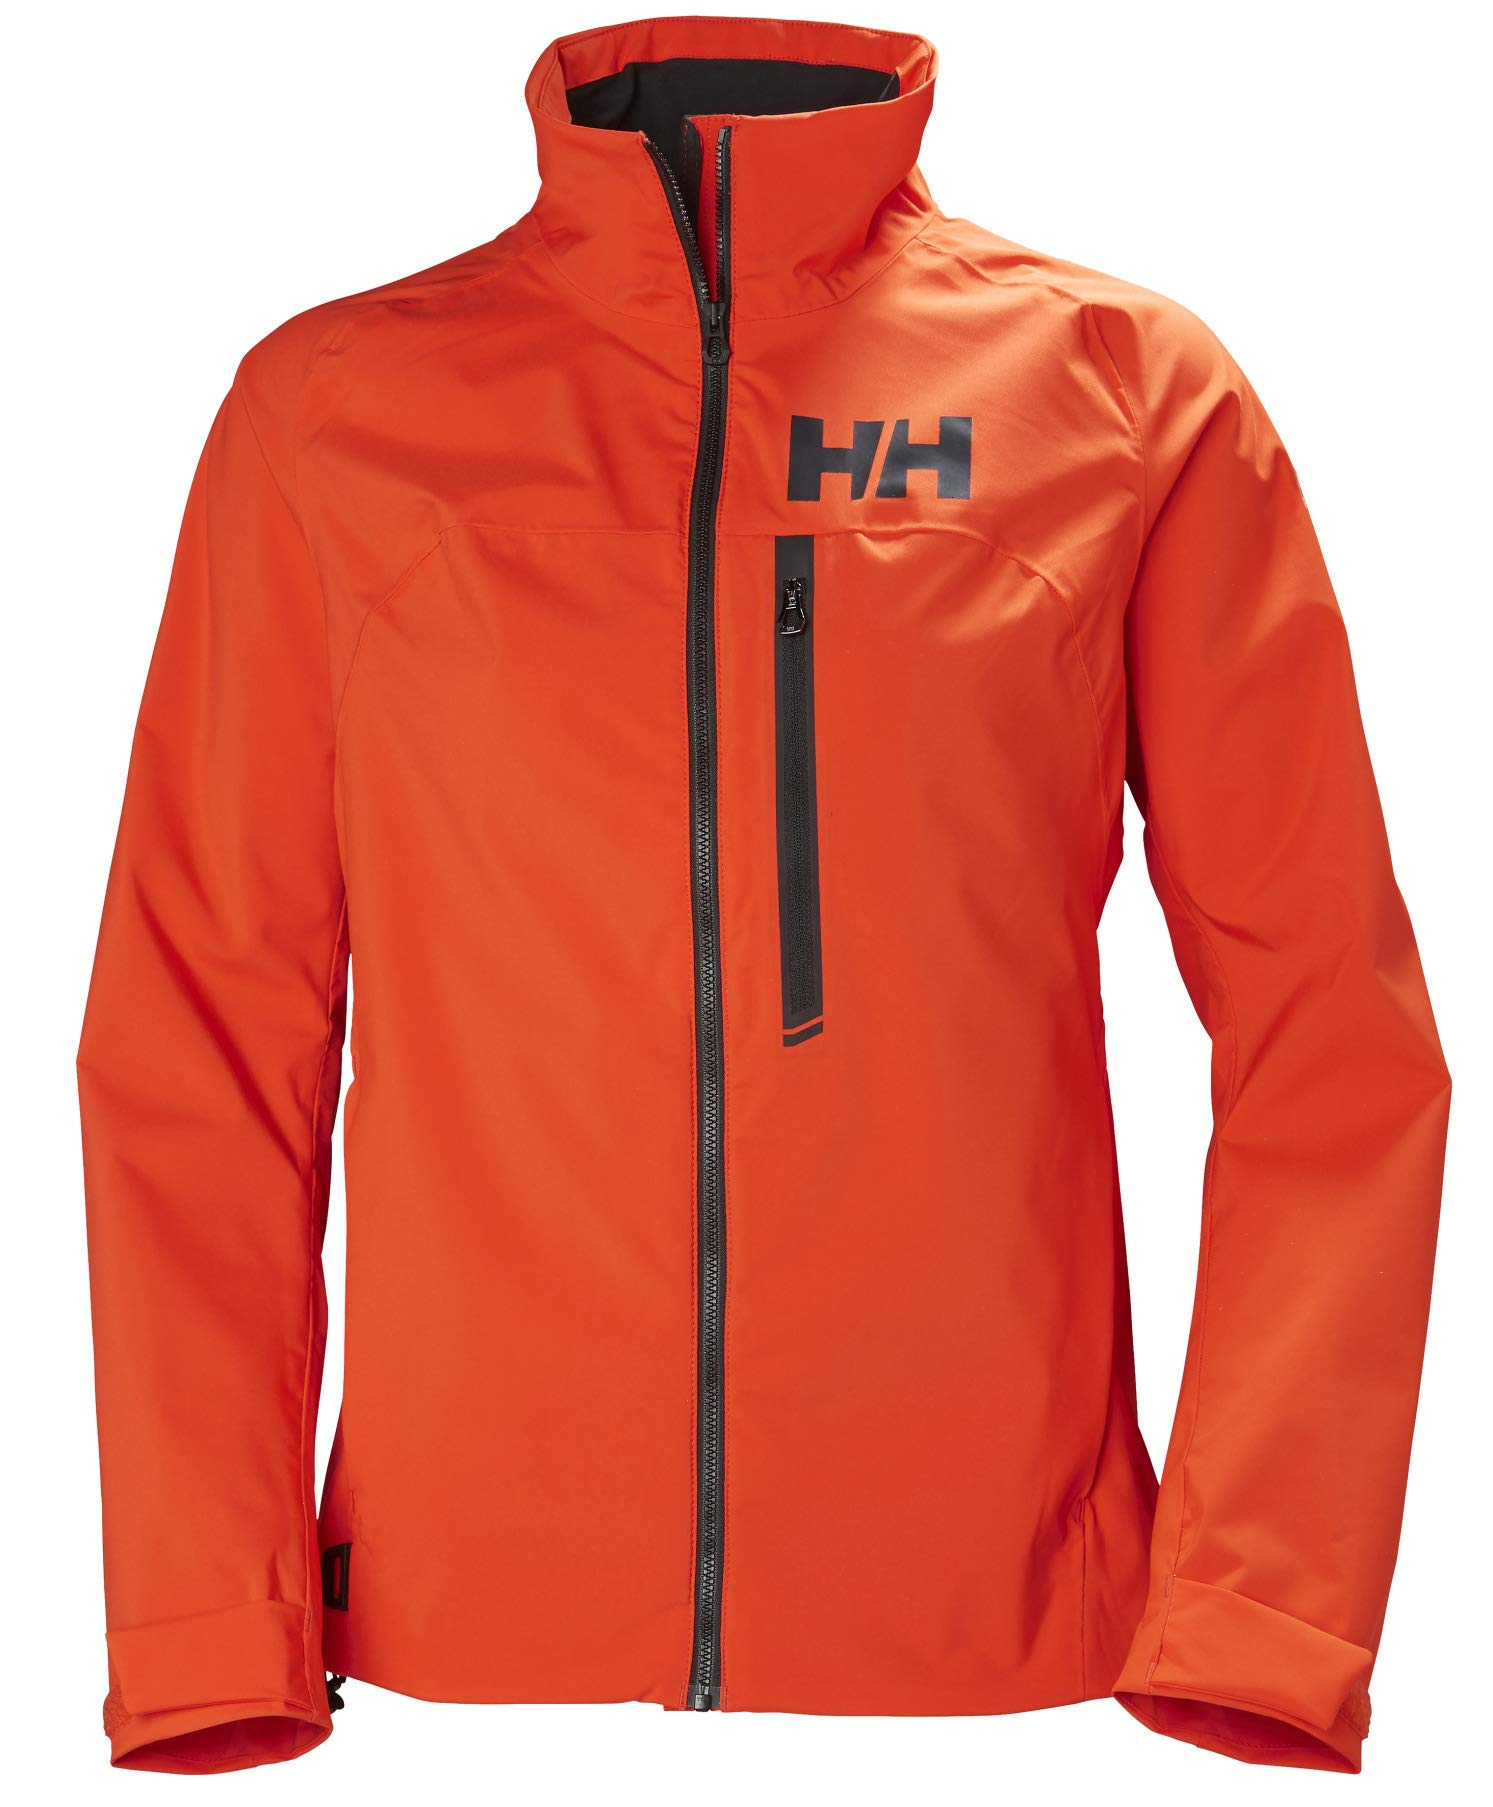 Helly-Hansen womens Hydropower Racing Waterproof Windproof Breathable Mesh Lined Technical Marine Design Jacket